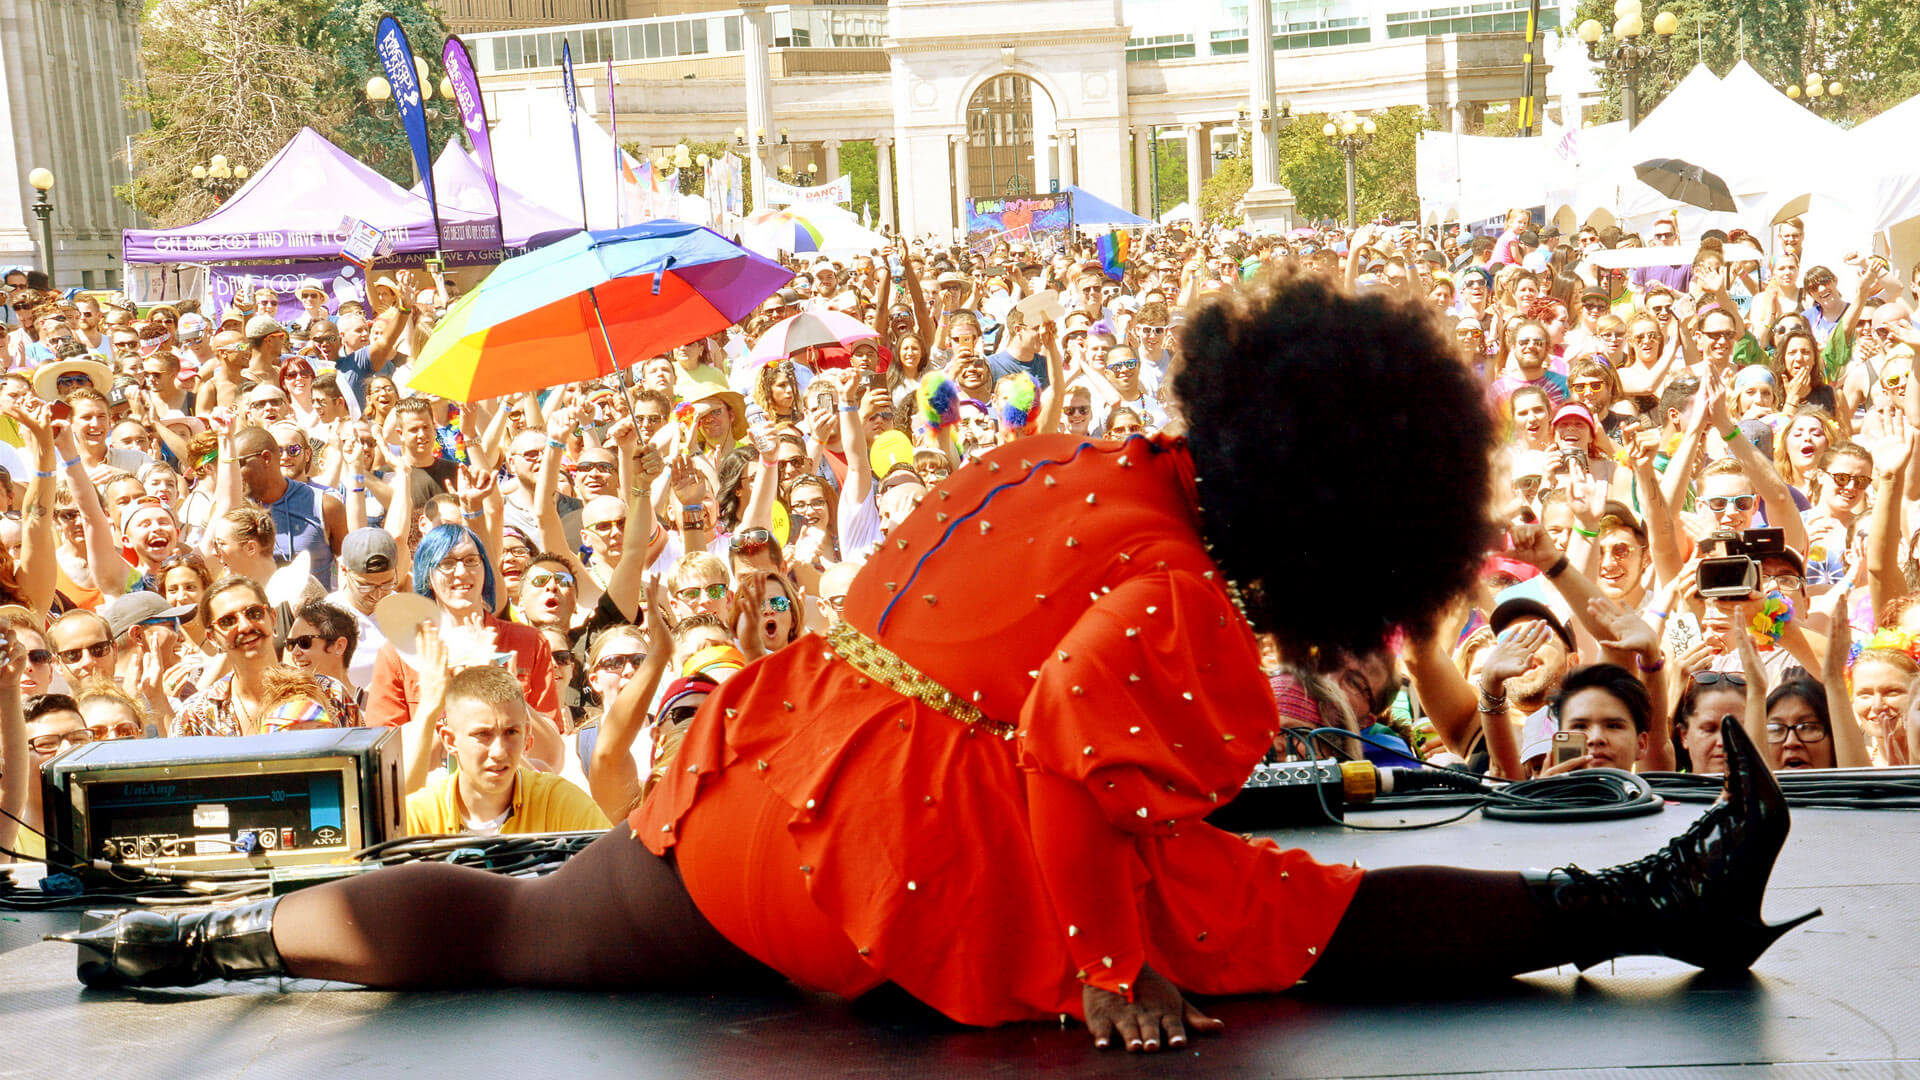 Audition to Perform at Denver Pride